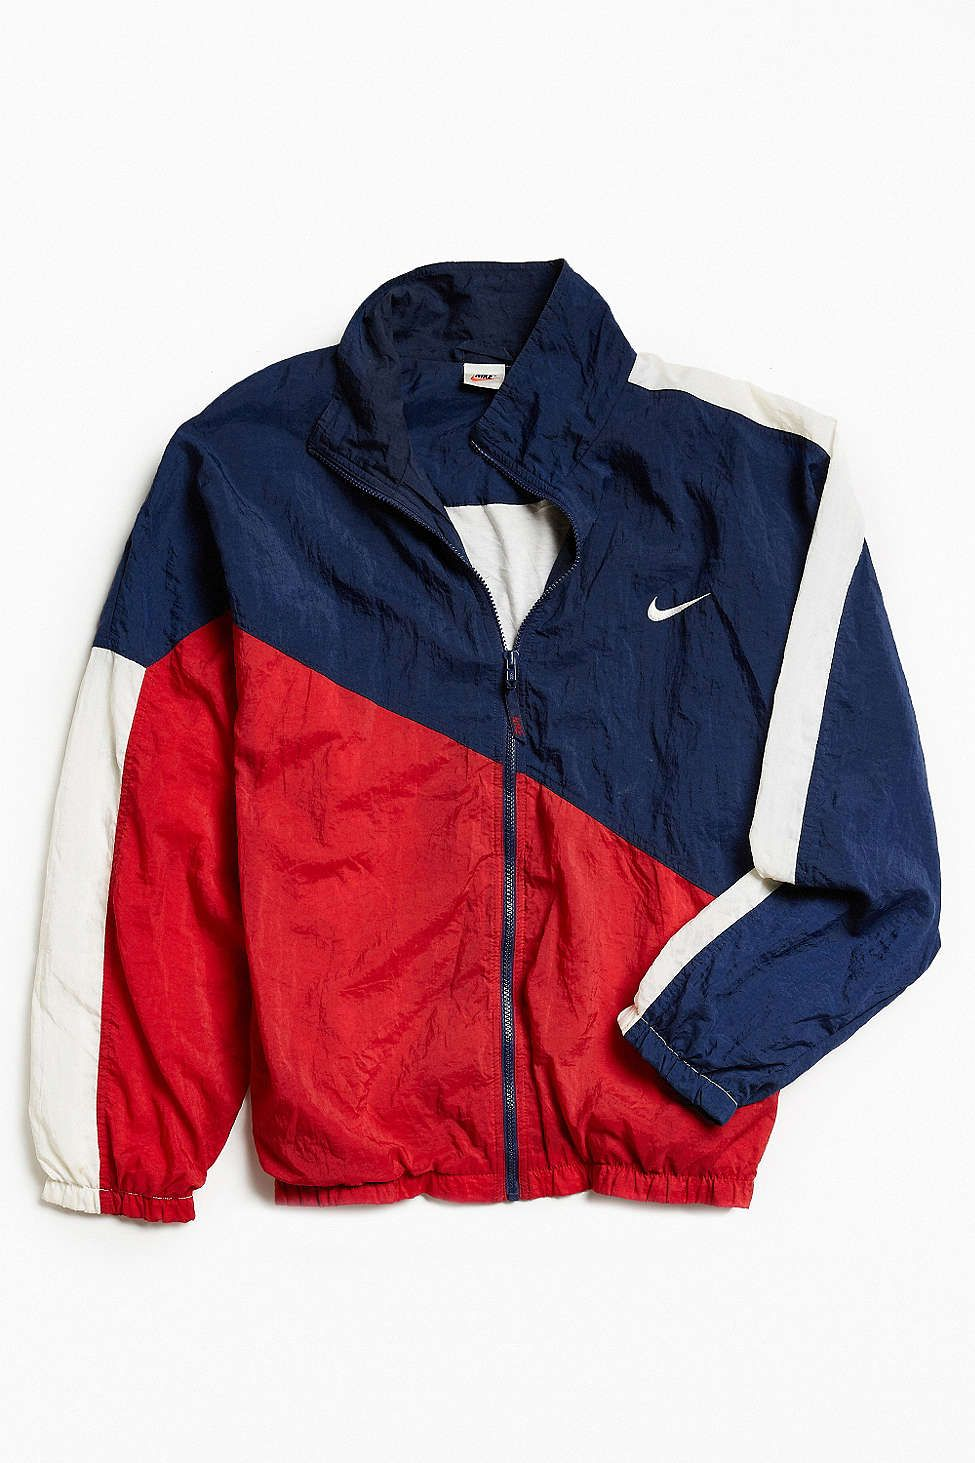 4d8e81ab8 Vintage Nike Windbreaker Jacket | COACHES JACKETS in 2019 | Vintage ...